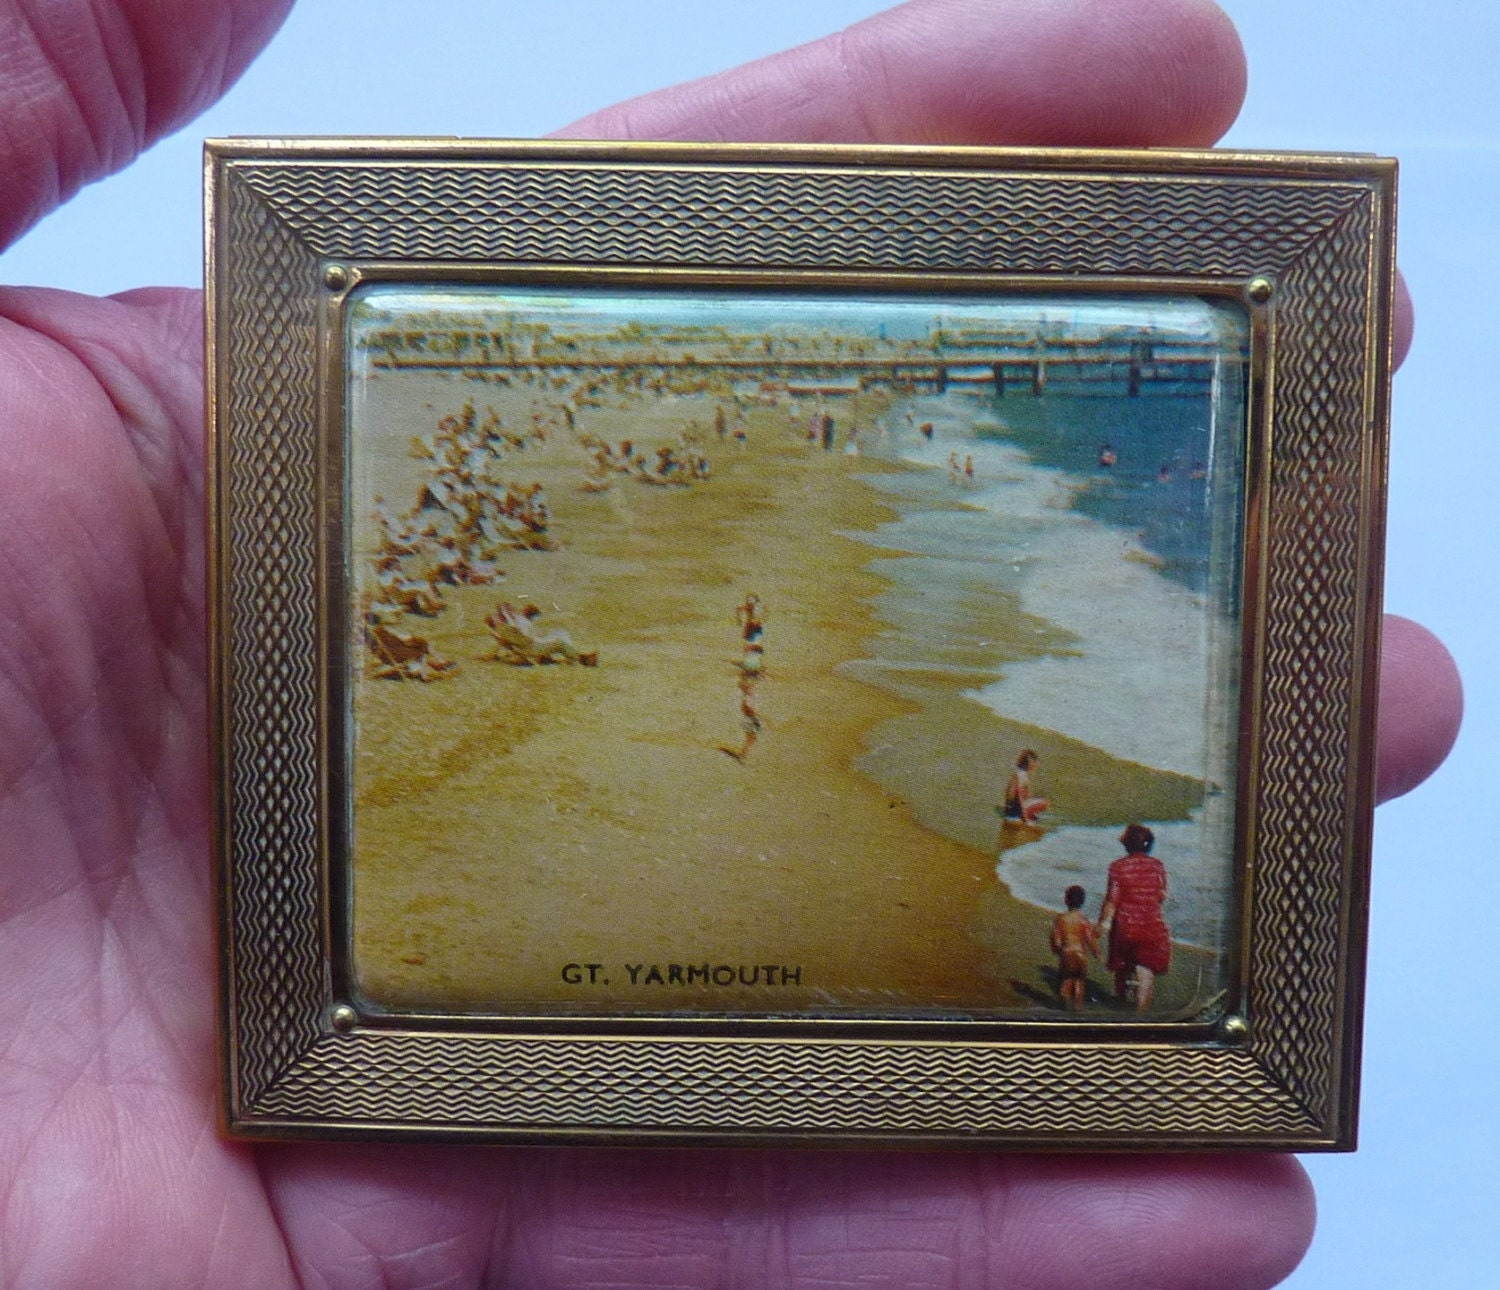 Sweet little vintage 1940s gwenda cigarette case business card sweet little vintage 1940s gwenda cigarette case business card case with a view along the beach at great yarmouth reheart Gallery